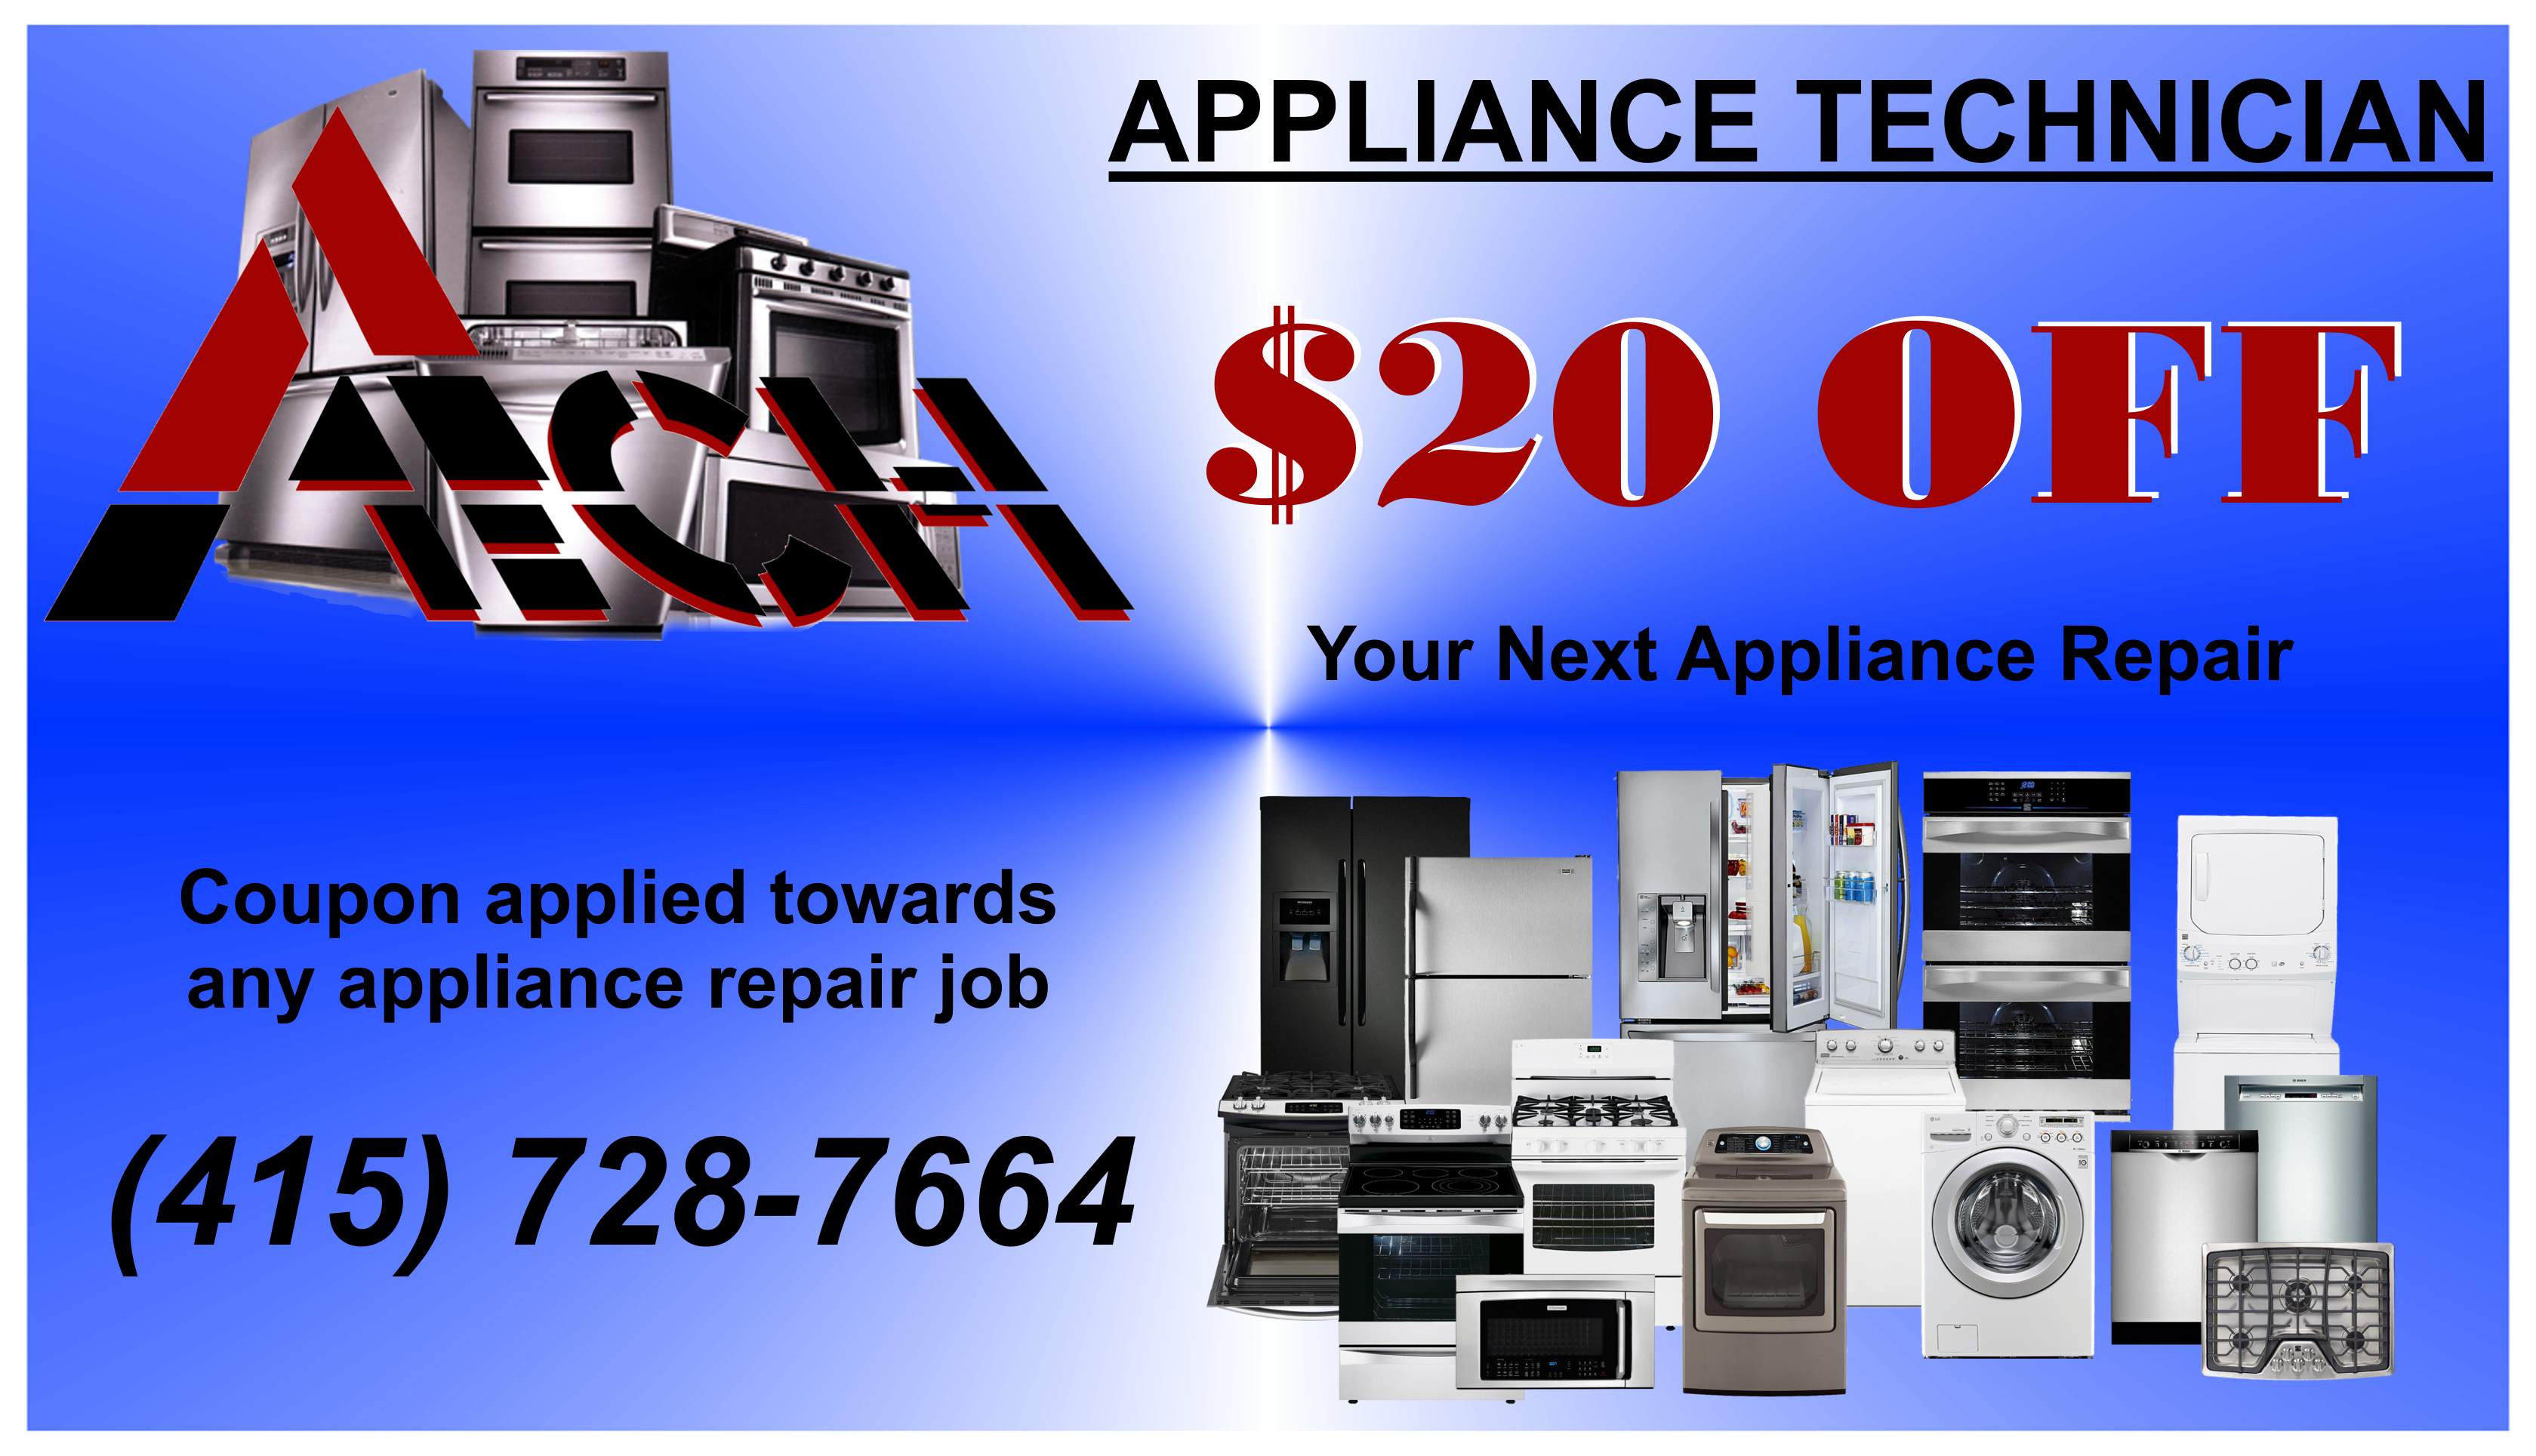 Get $20 OFF on any appliance repair service